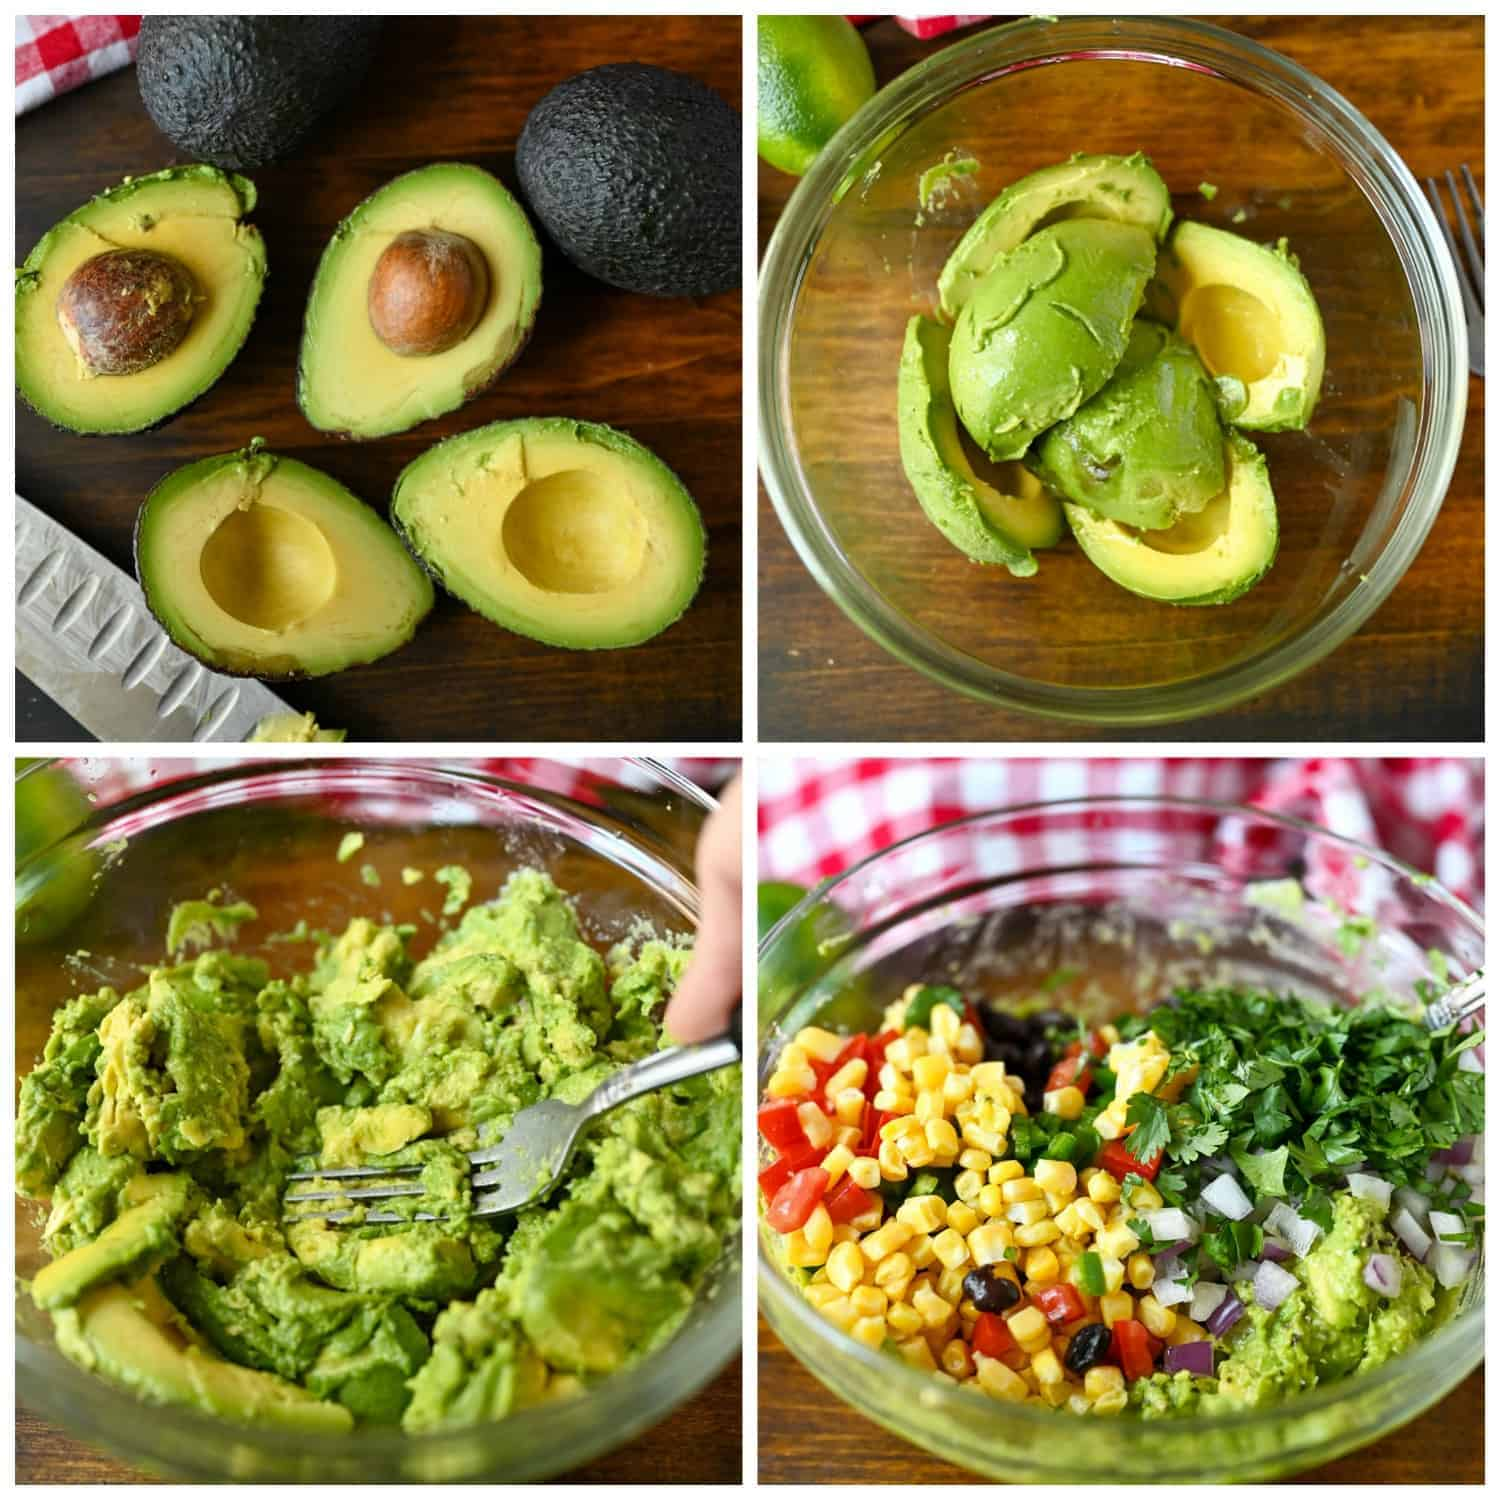 Four process photos. First one, 4 avocados and three cut in half. Second one, peeled avocados in a clear bowl. Third one, avocados being mashed with a fork. Fourth one, corn, beans, tomatoes, jalapenos, cilanto, lime juice and salt mixed in.